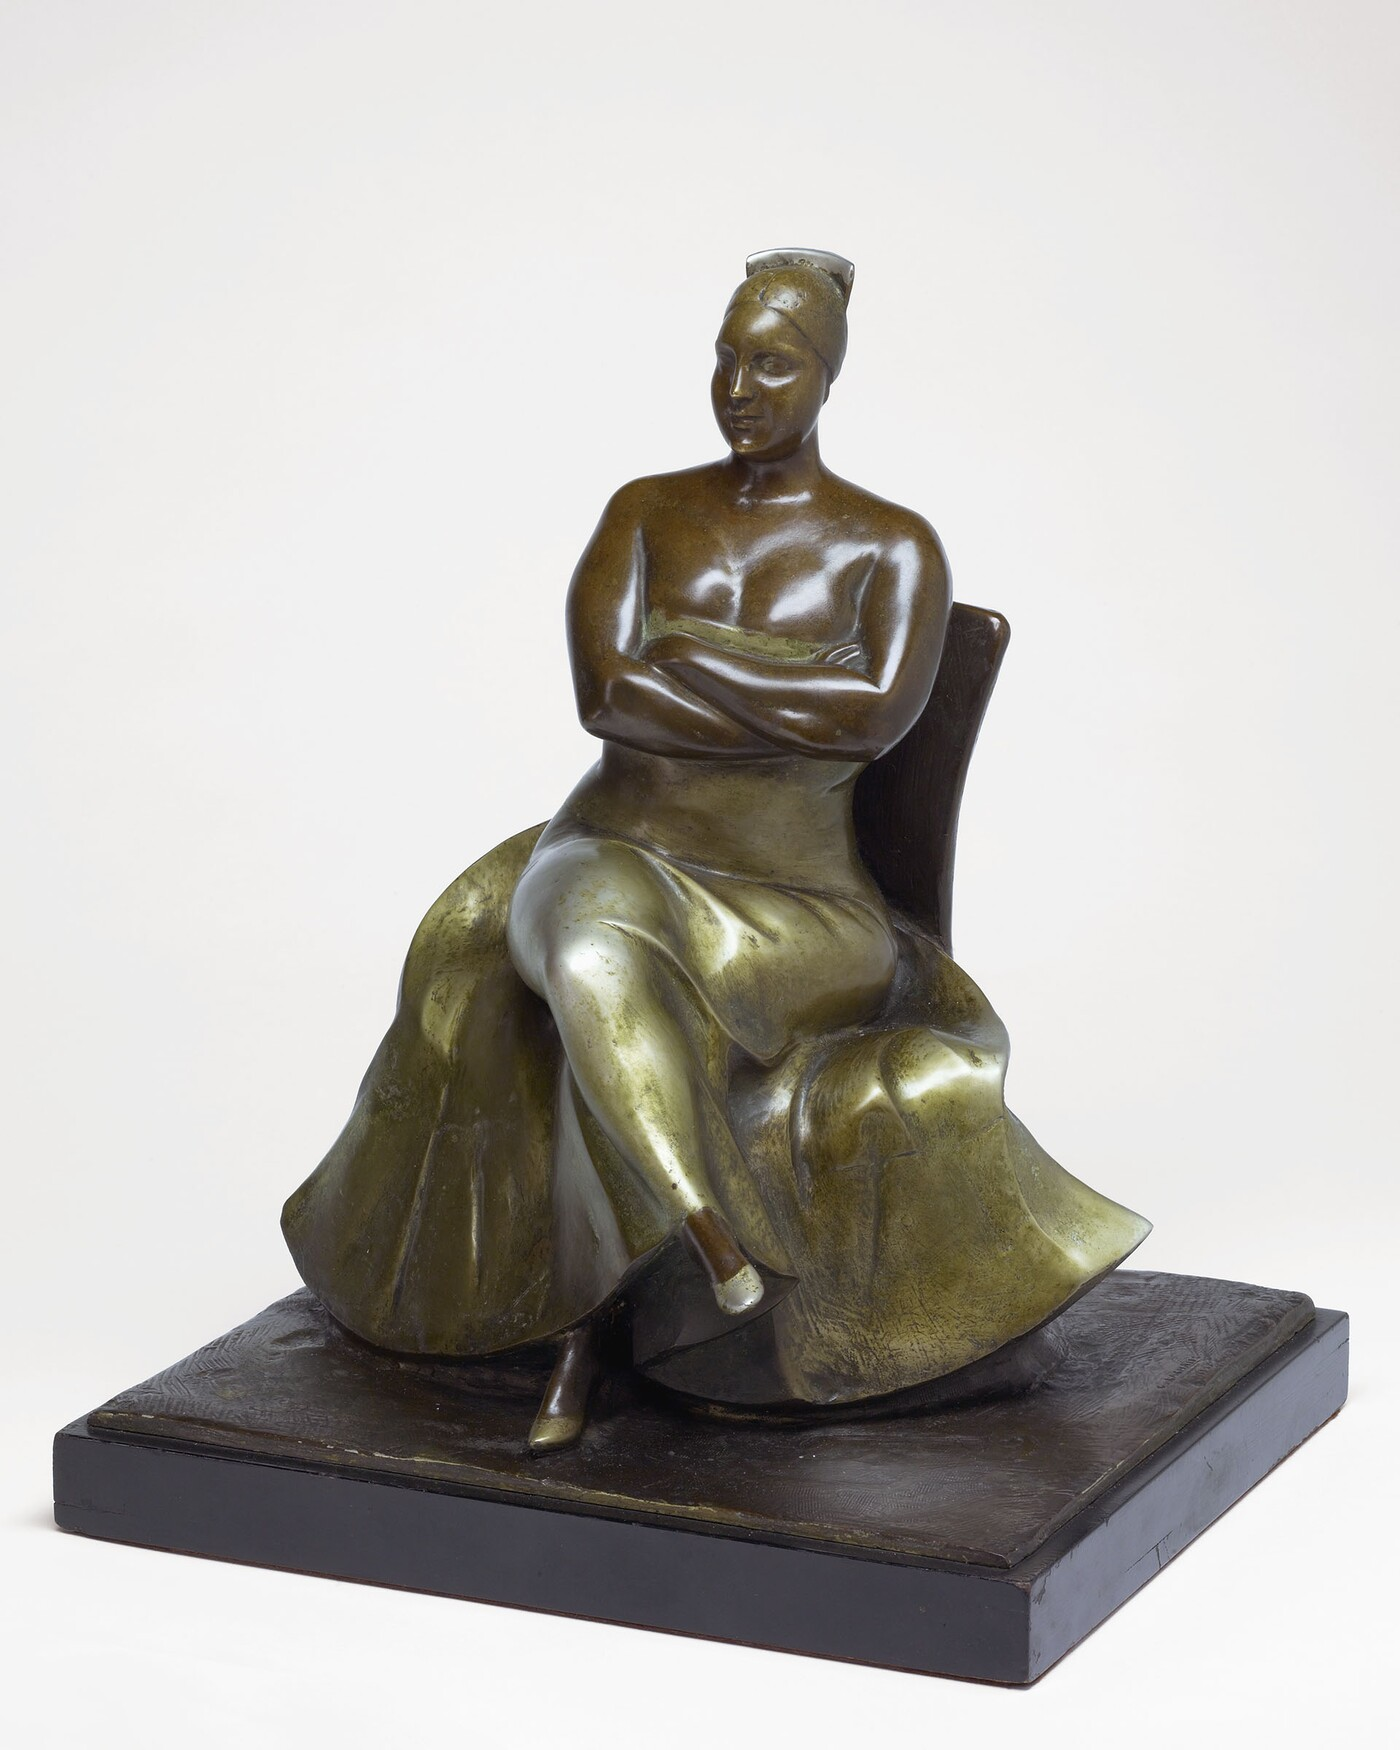 Gaston Lachaise (1882–1935), Roman Bronze Works, Woman Seated, 1925, Bronze with nickel plate